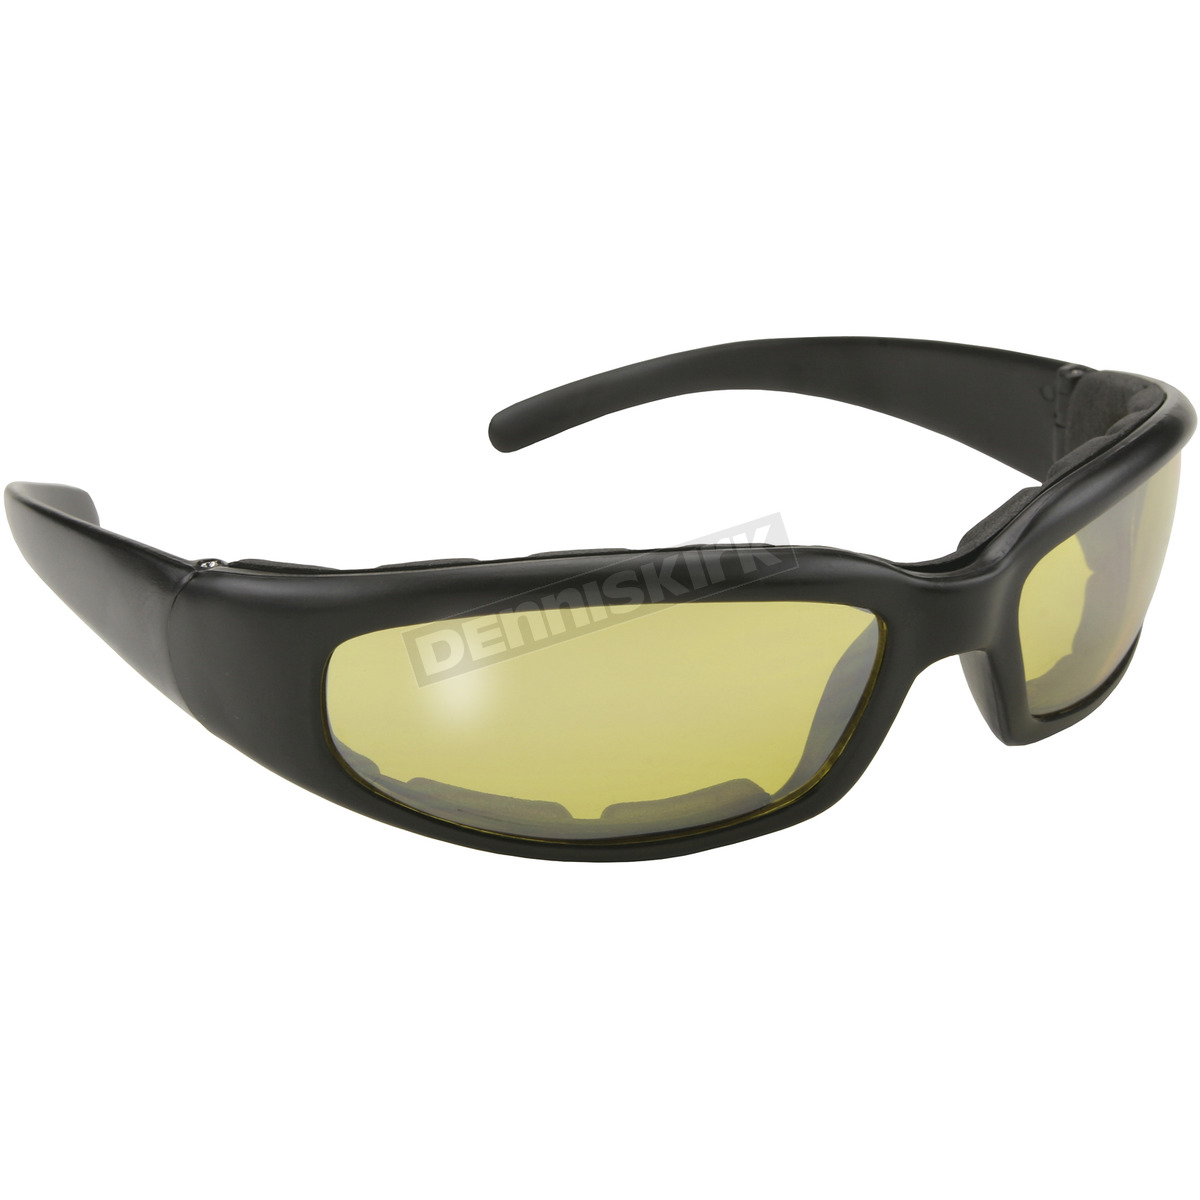 kickstart eyewear black rally sunglasses w yellow lens